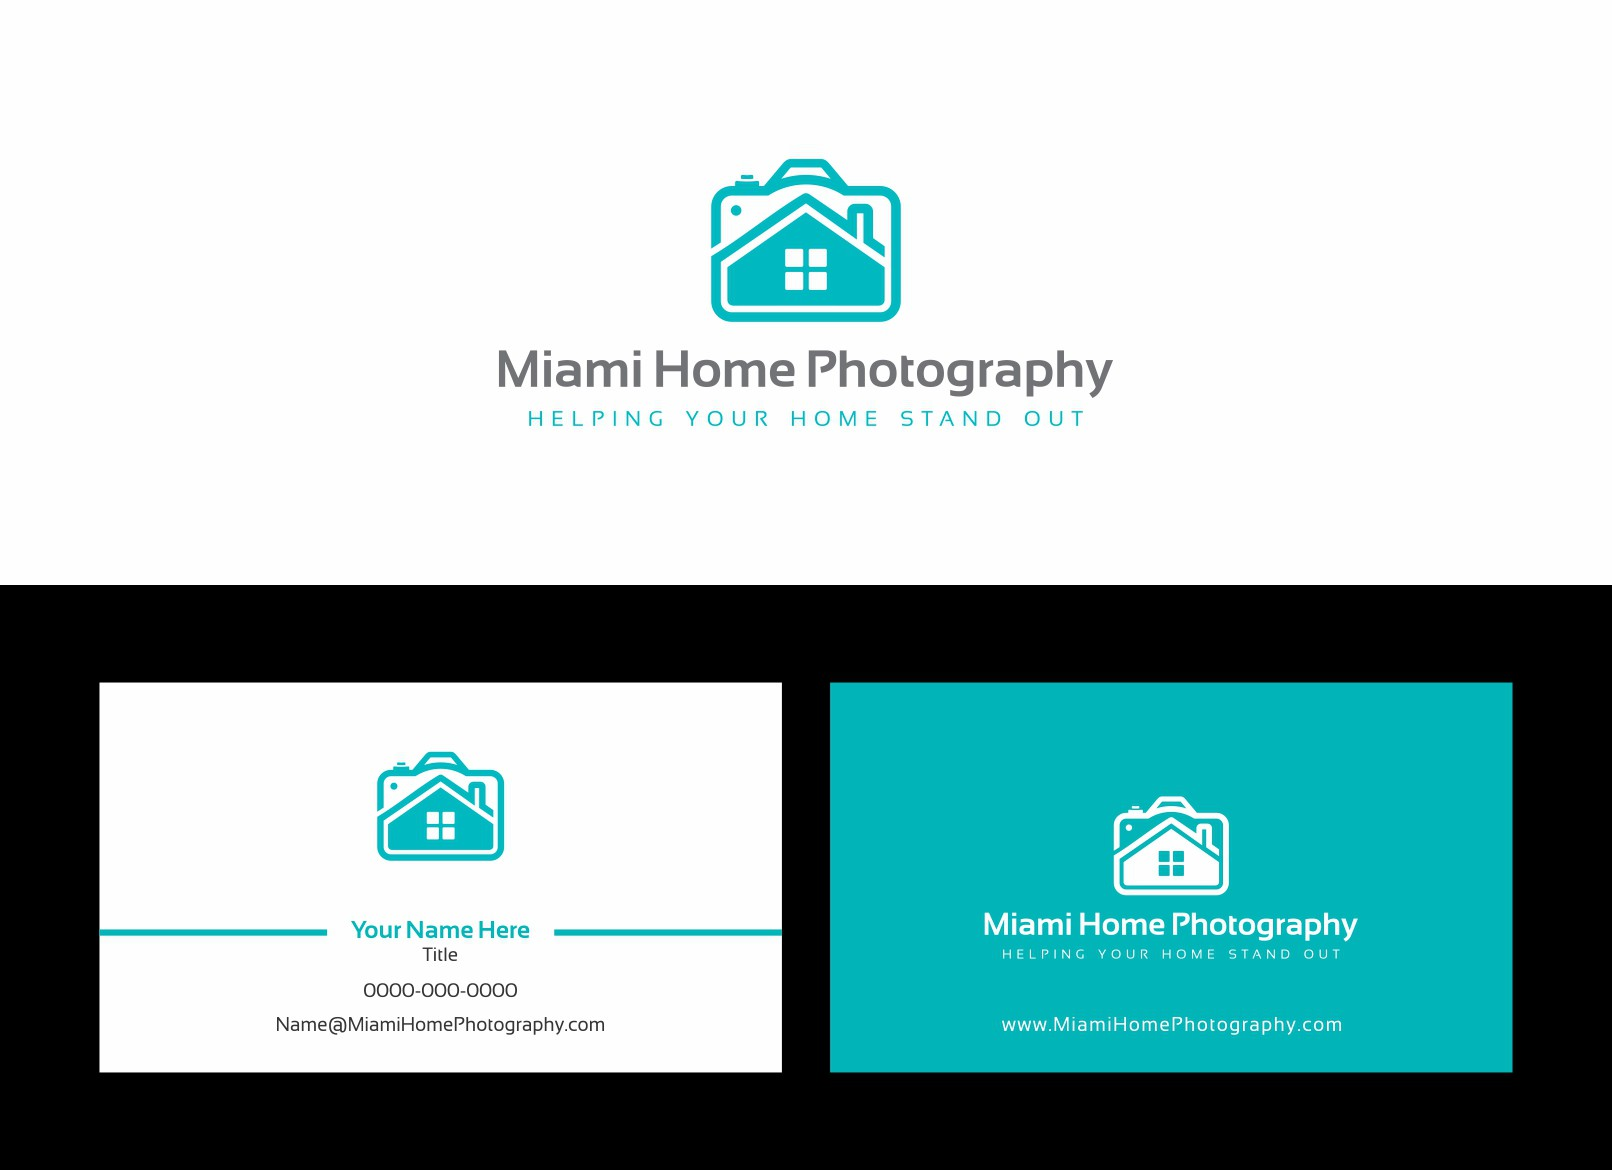 Miami Home Photography needs a new logo and business card